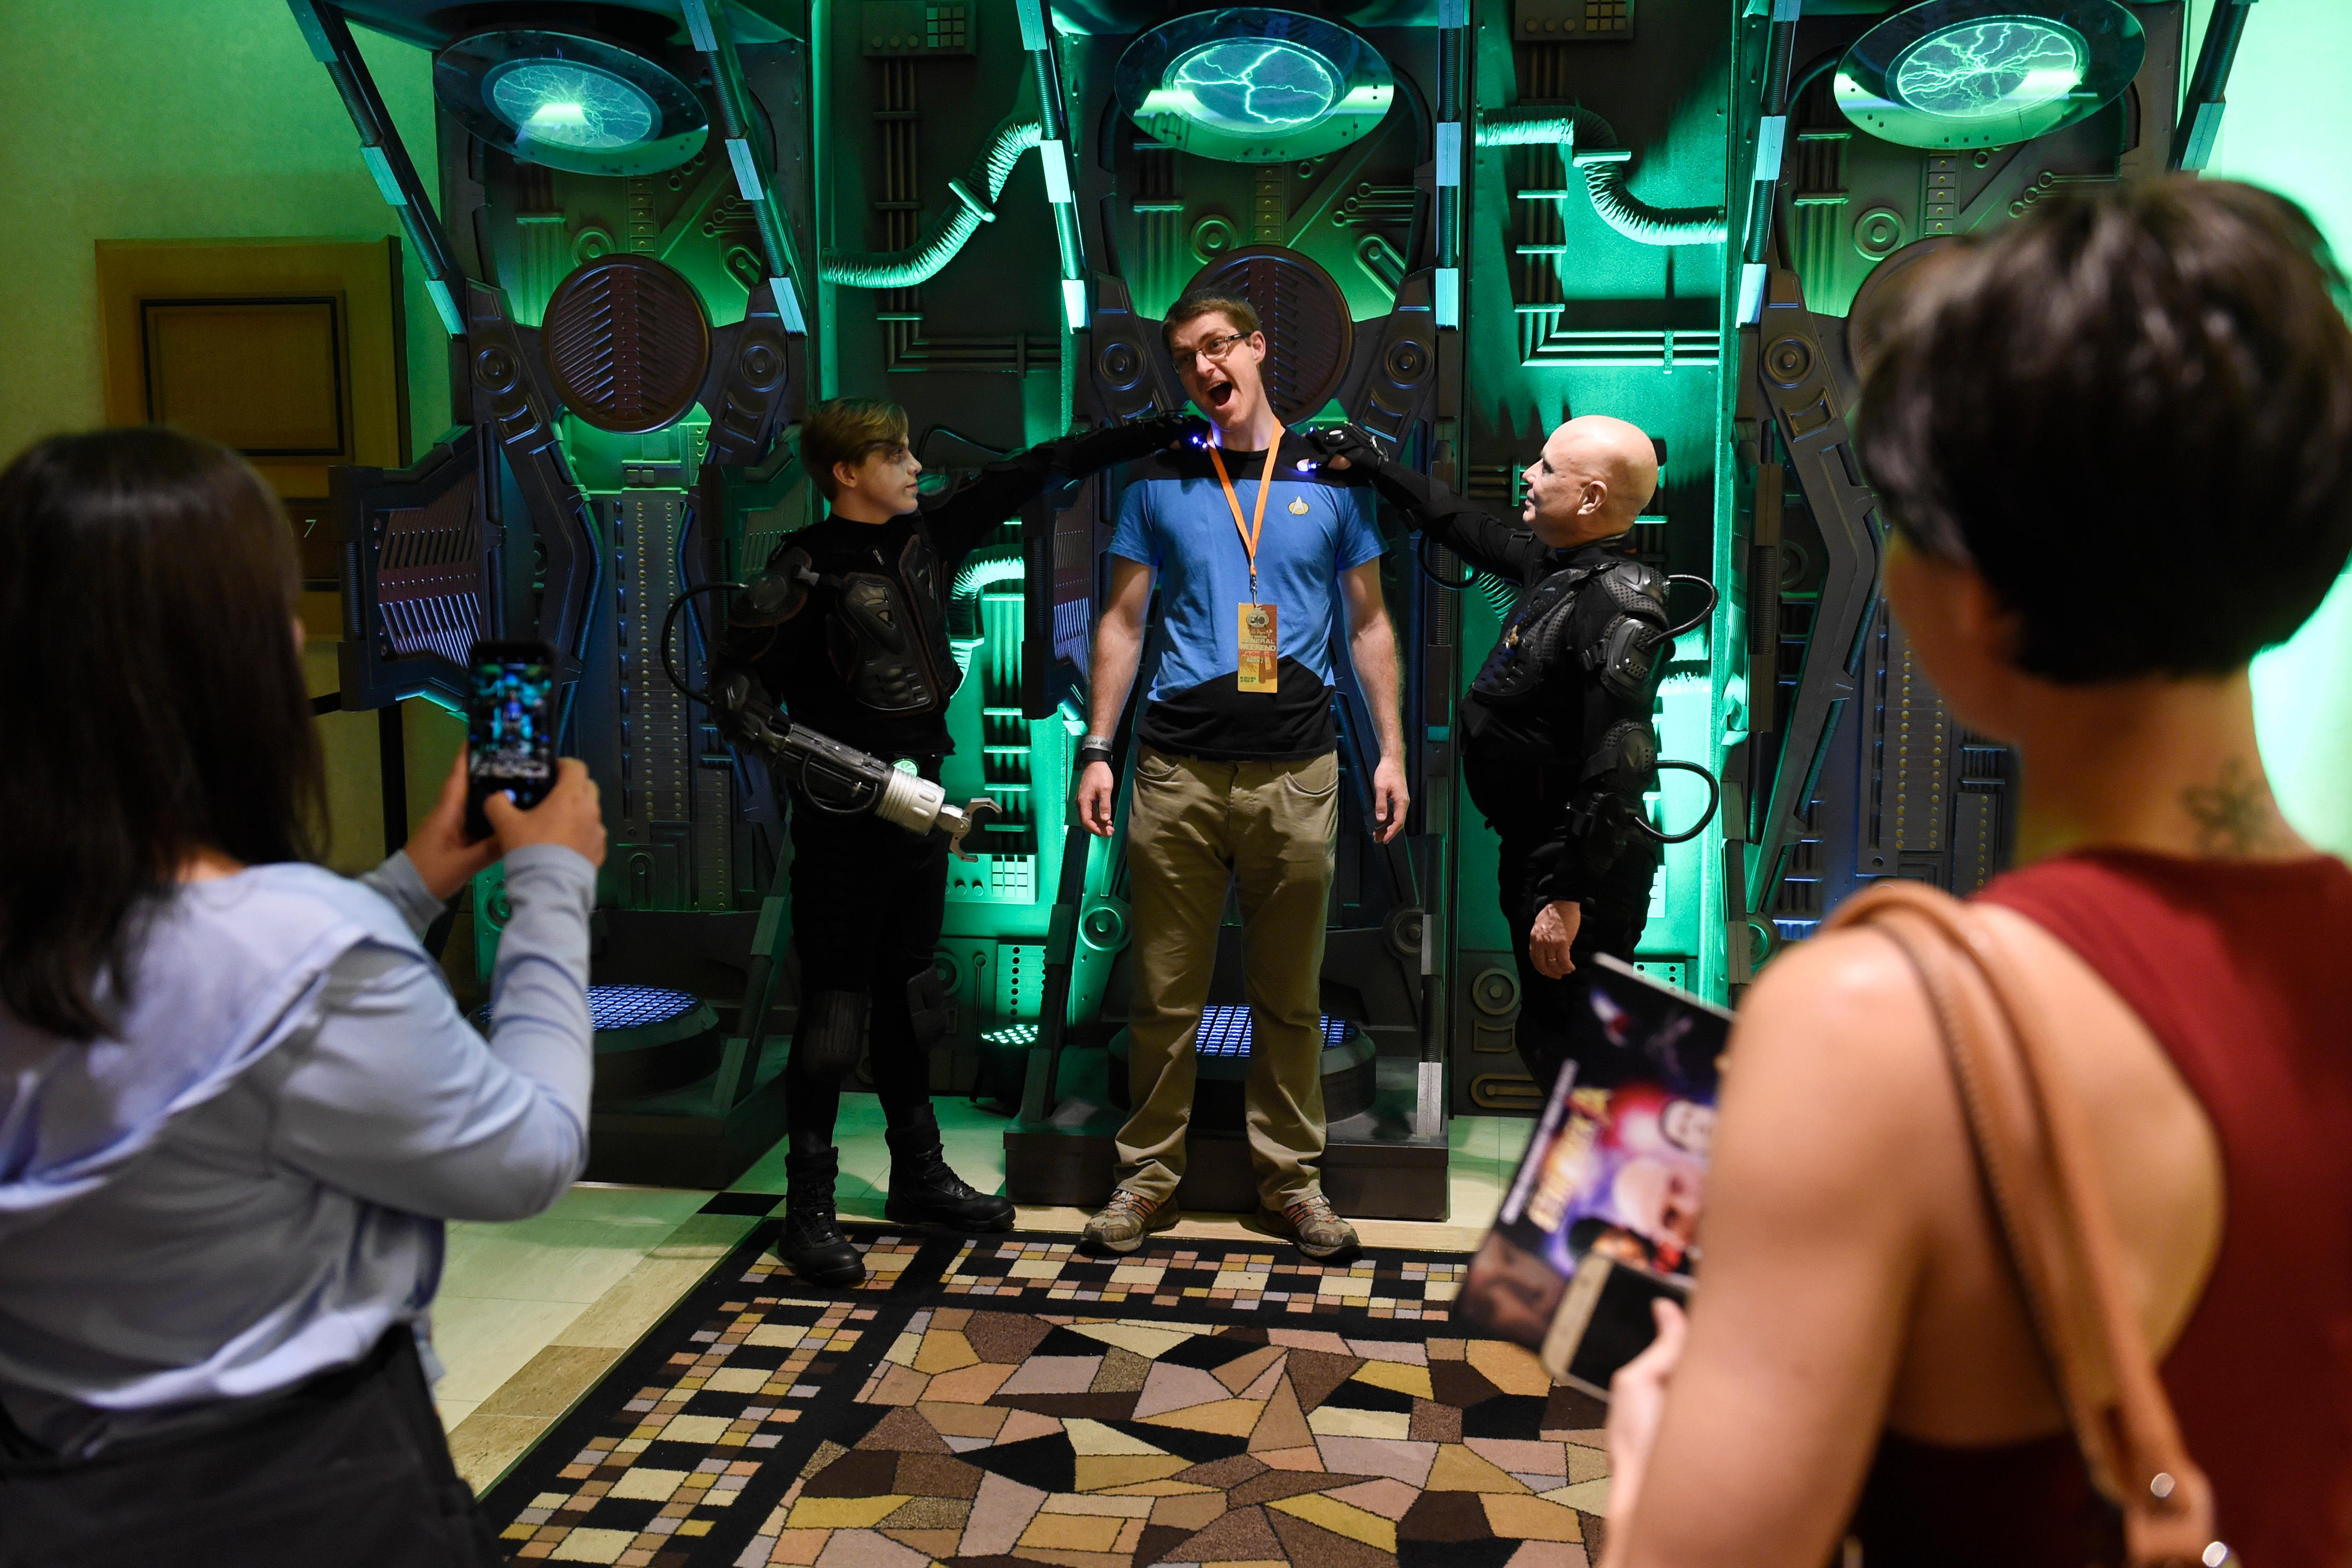 An attendee has his photo taken in a Borg assimilation machine during the 16th annual Las Vegas Star Trek Convention Saturday, August 5, 2017, at the Rio.  CREDIT: Sam Morris/Las Vegas News Bureau